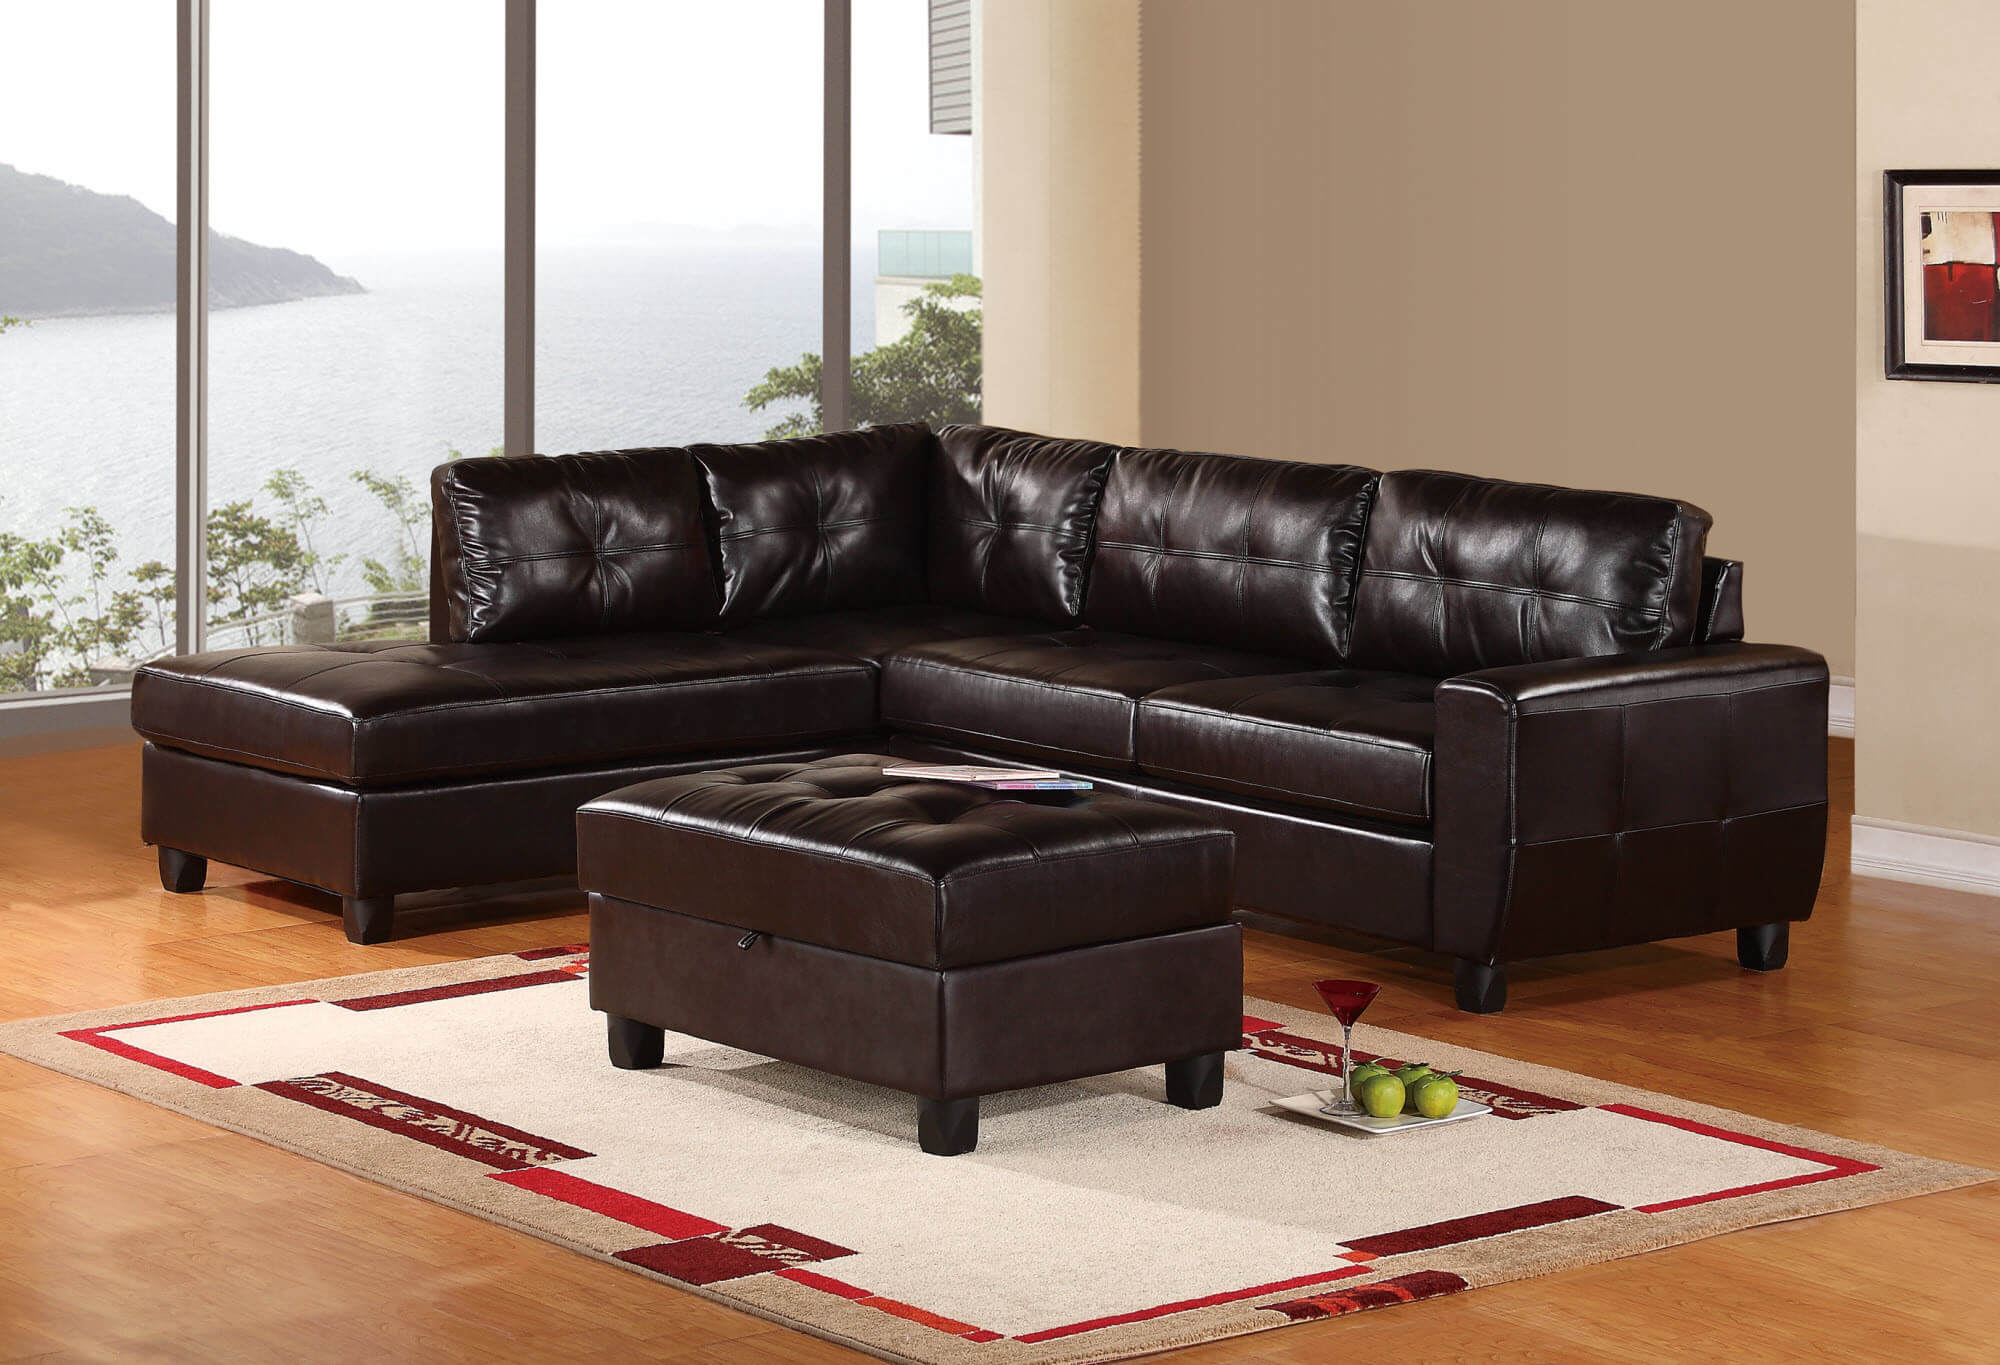 This sectional is simple at first glance.